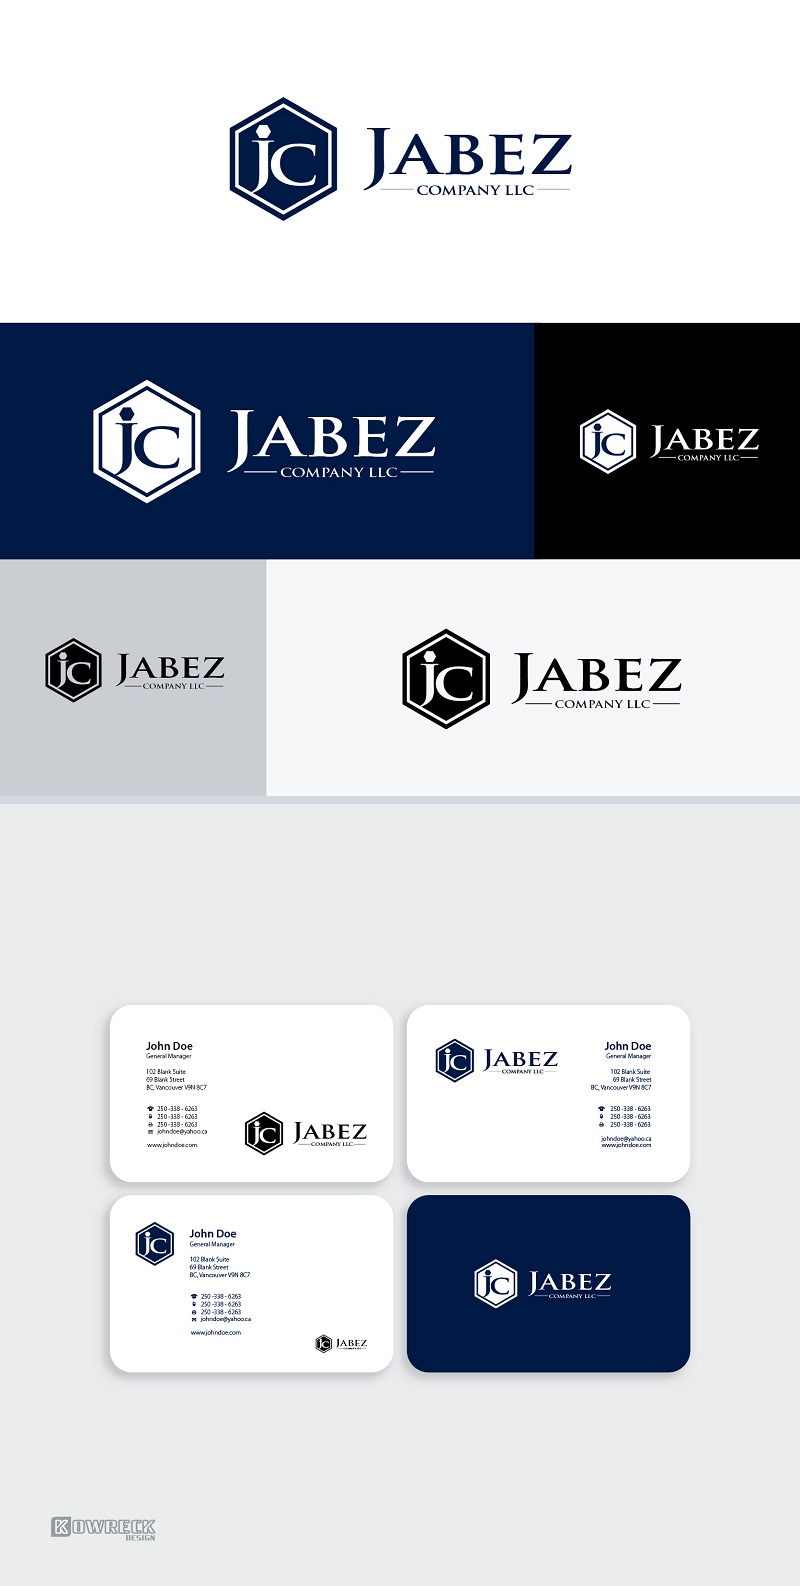 Logo Design by kowreck - Entry No. 165 in the Logo Design Contest New Logo Design for Jabez Compnay, LLC.